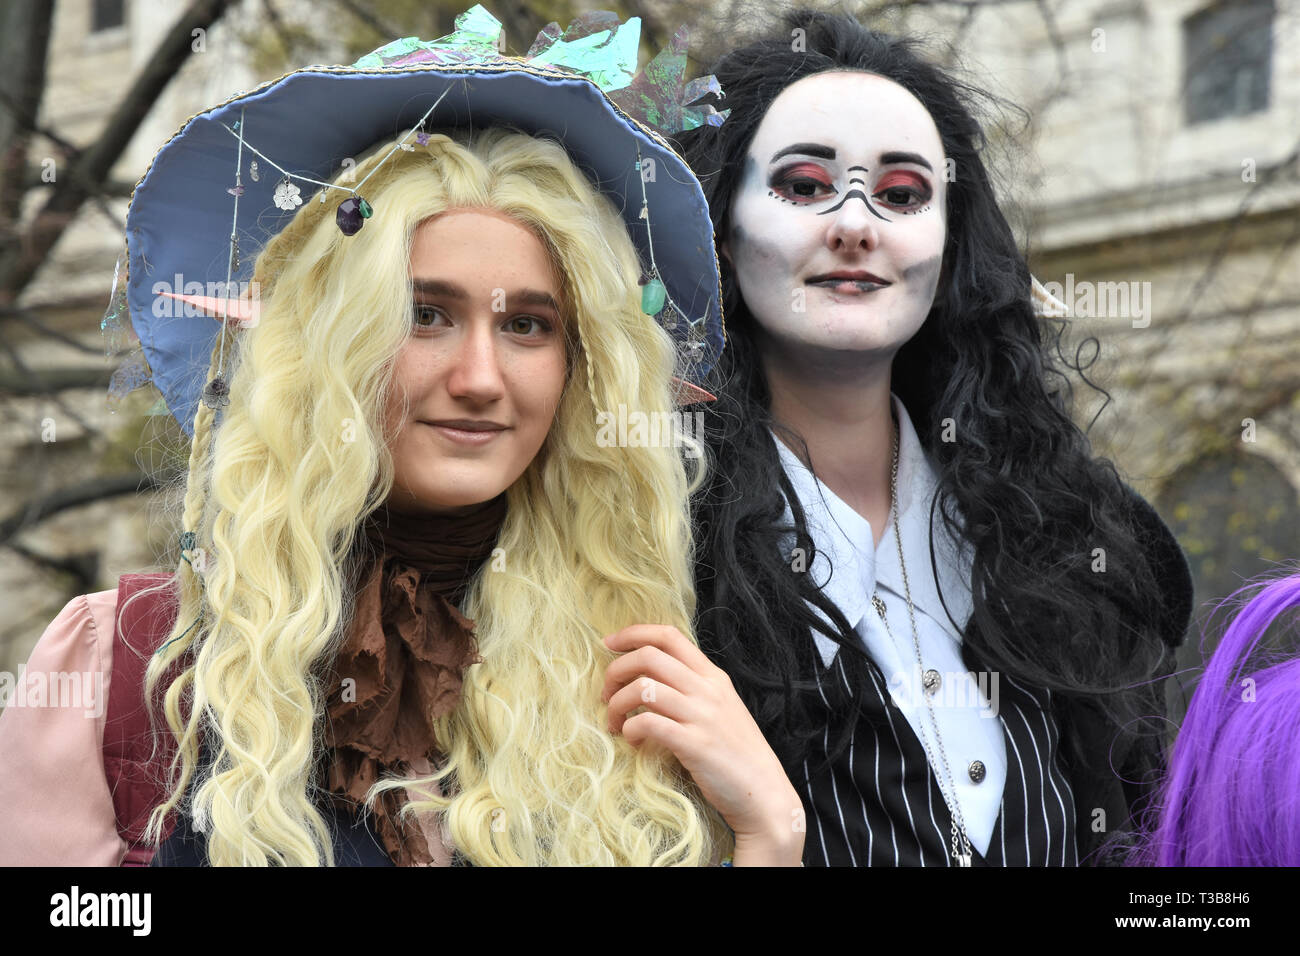 Taako and Kravitz, London Games Festival, St Paul's Cathedral, City of London, London. UK - Stock Image